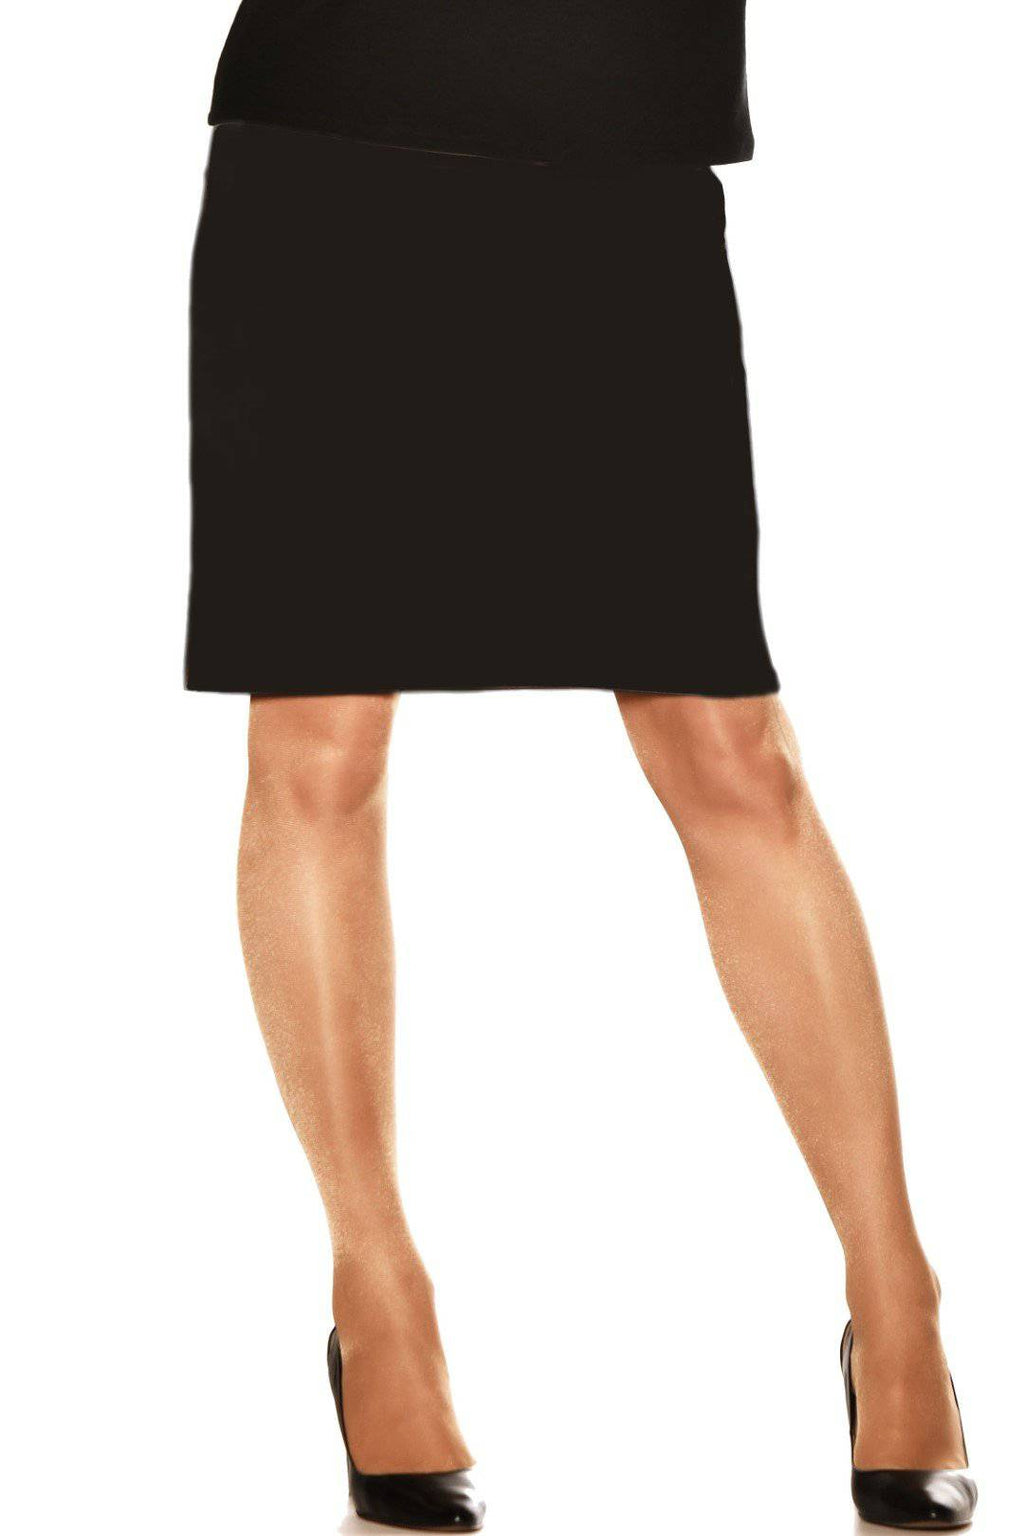 PAULA RYAN ESSENTIALS Fitted Skirt - Roma - Paula Ryan